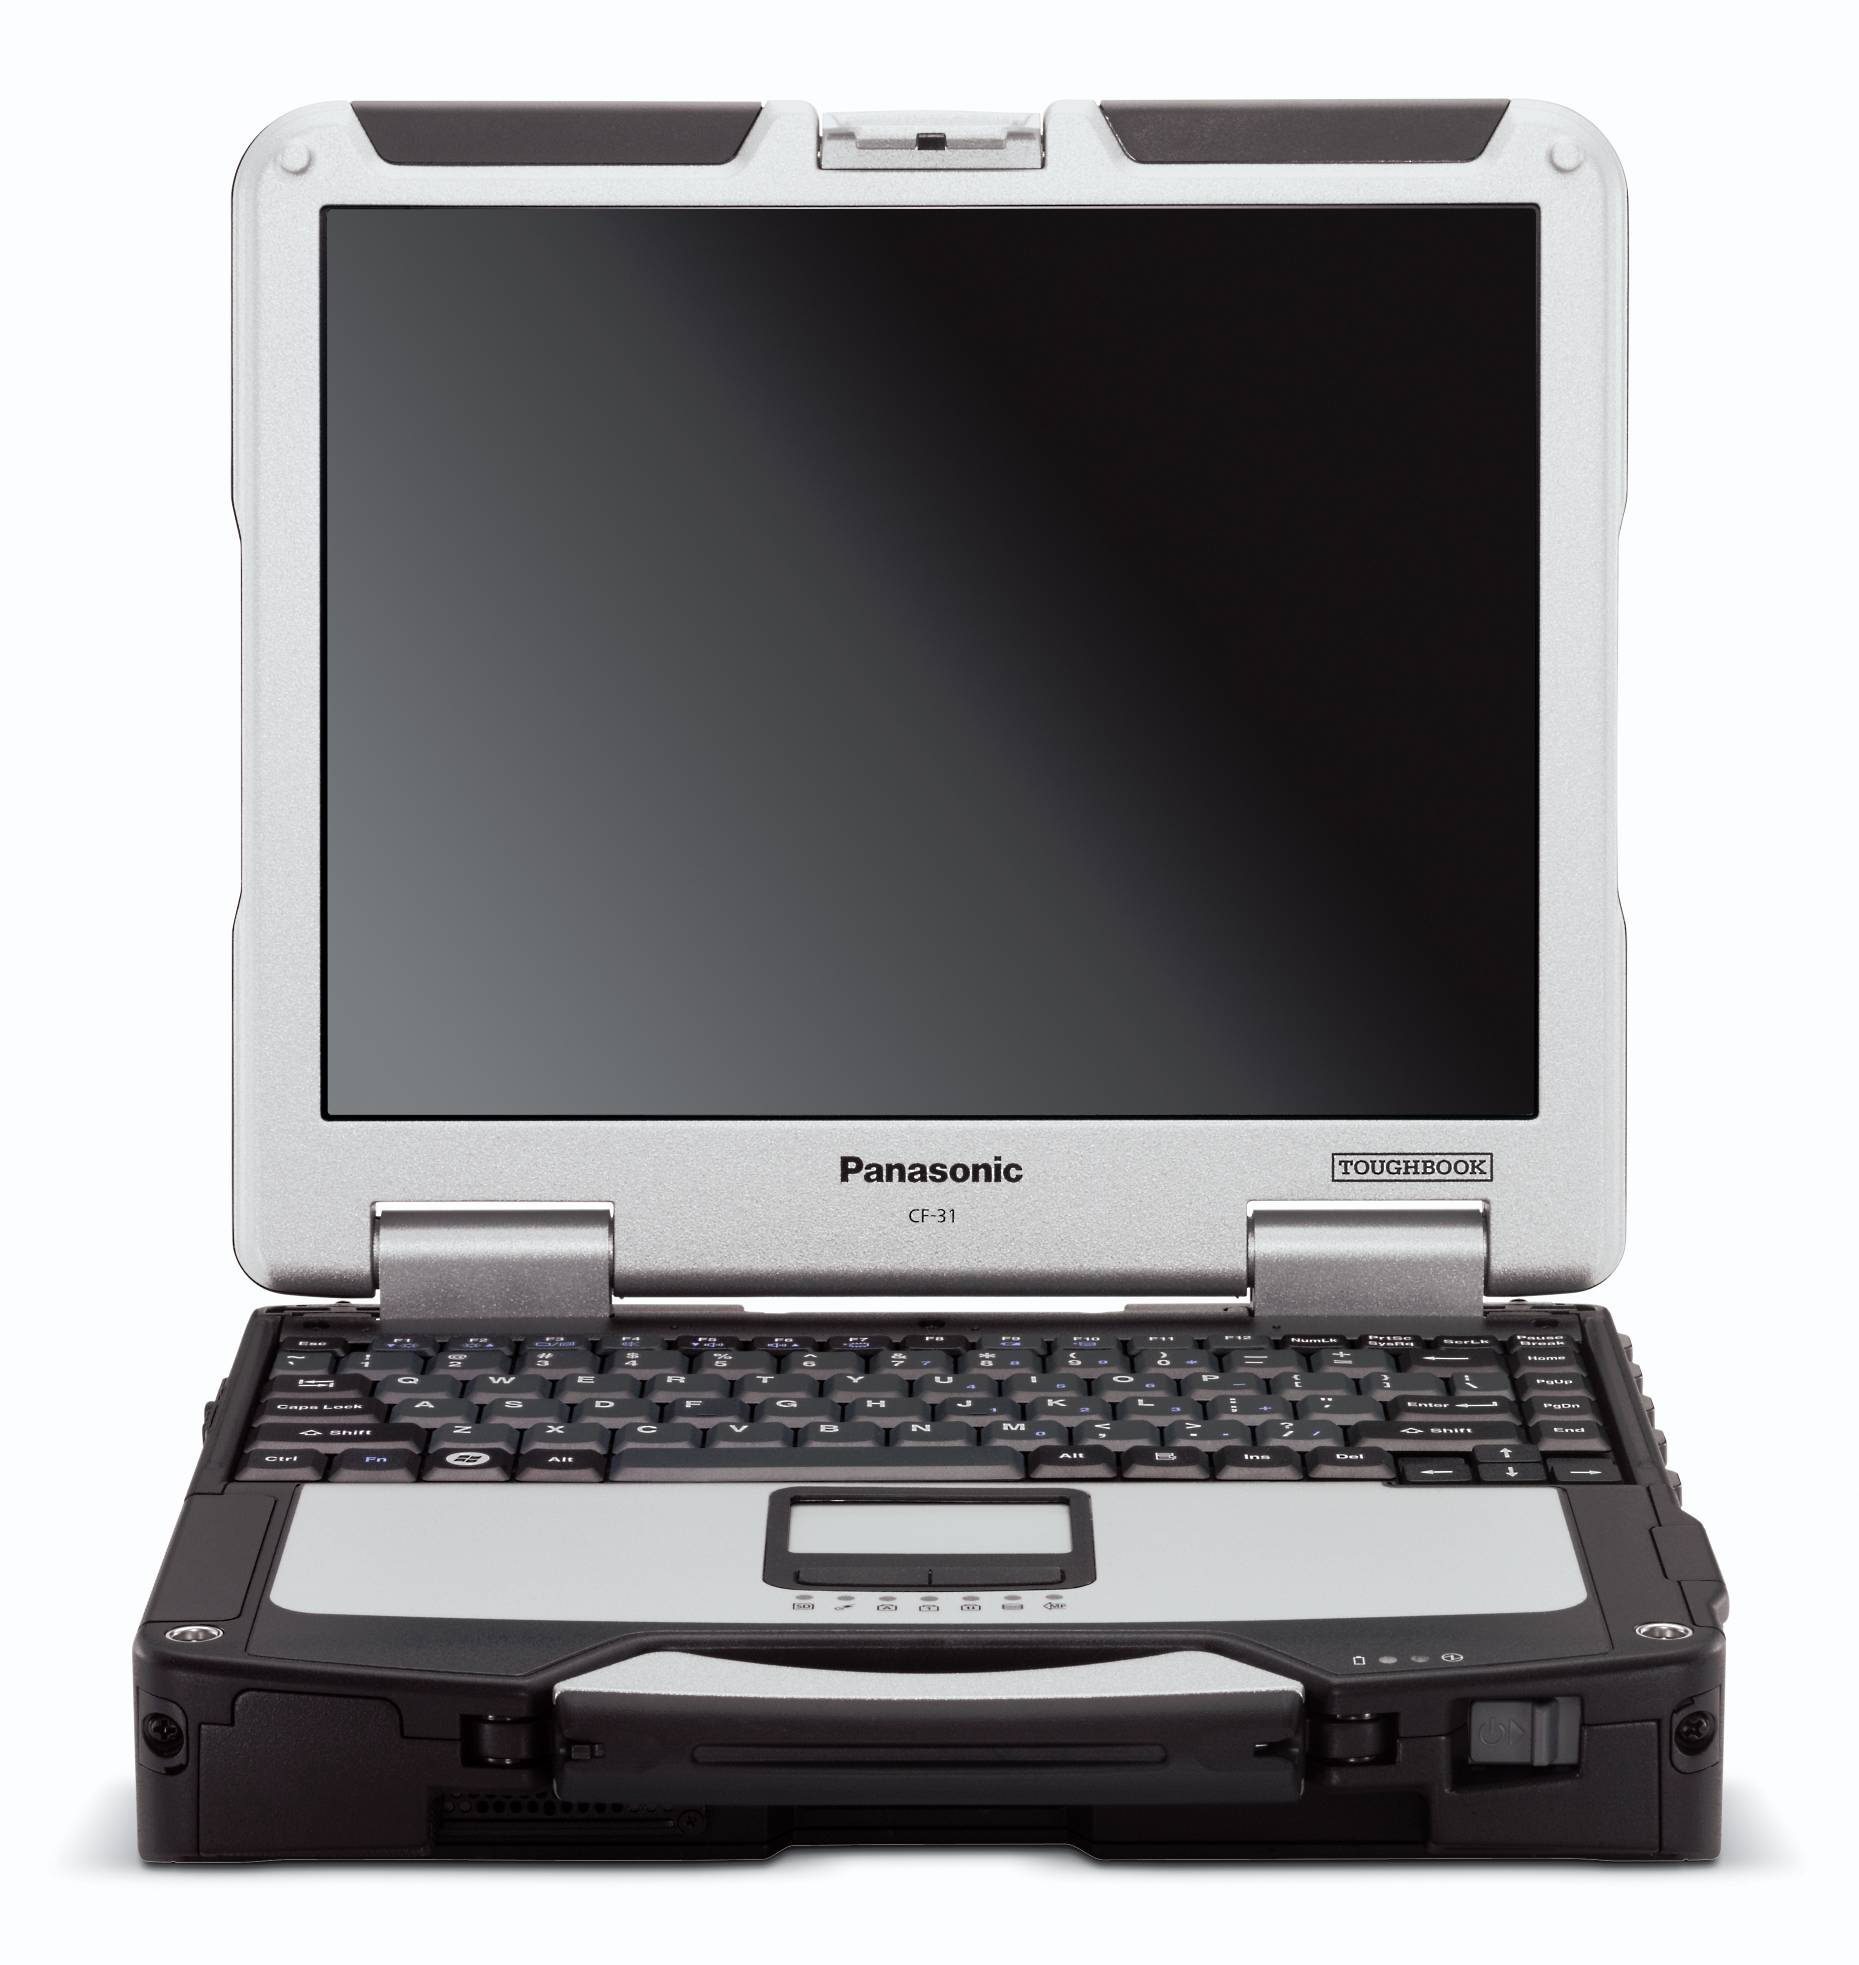 Refurbished Panasonic A Grade CF-31 Toughbook 13.1-inch (Touch XGA LED 1024 x 768) 2.4GHz Core i5 500GB HD 8 GB Memory GOBI Broadband Digitizer Pen Win 7 Pro OS Power Adapter Included